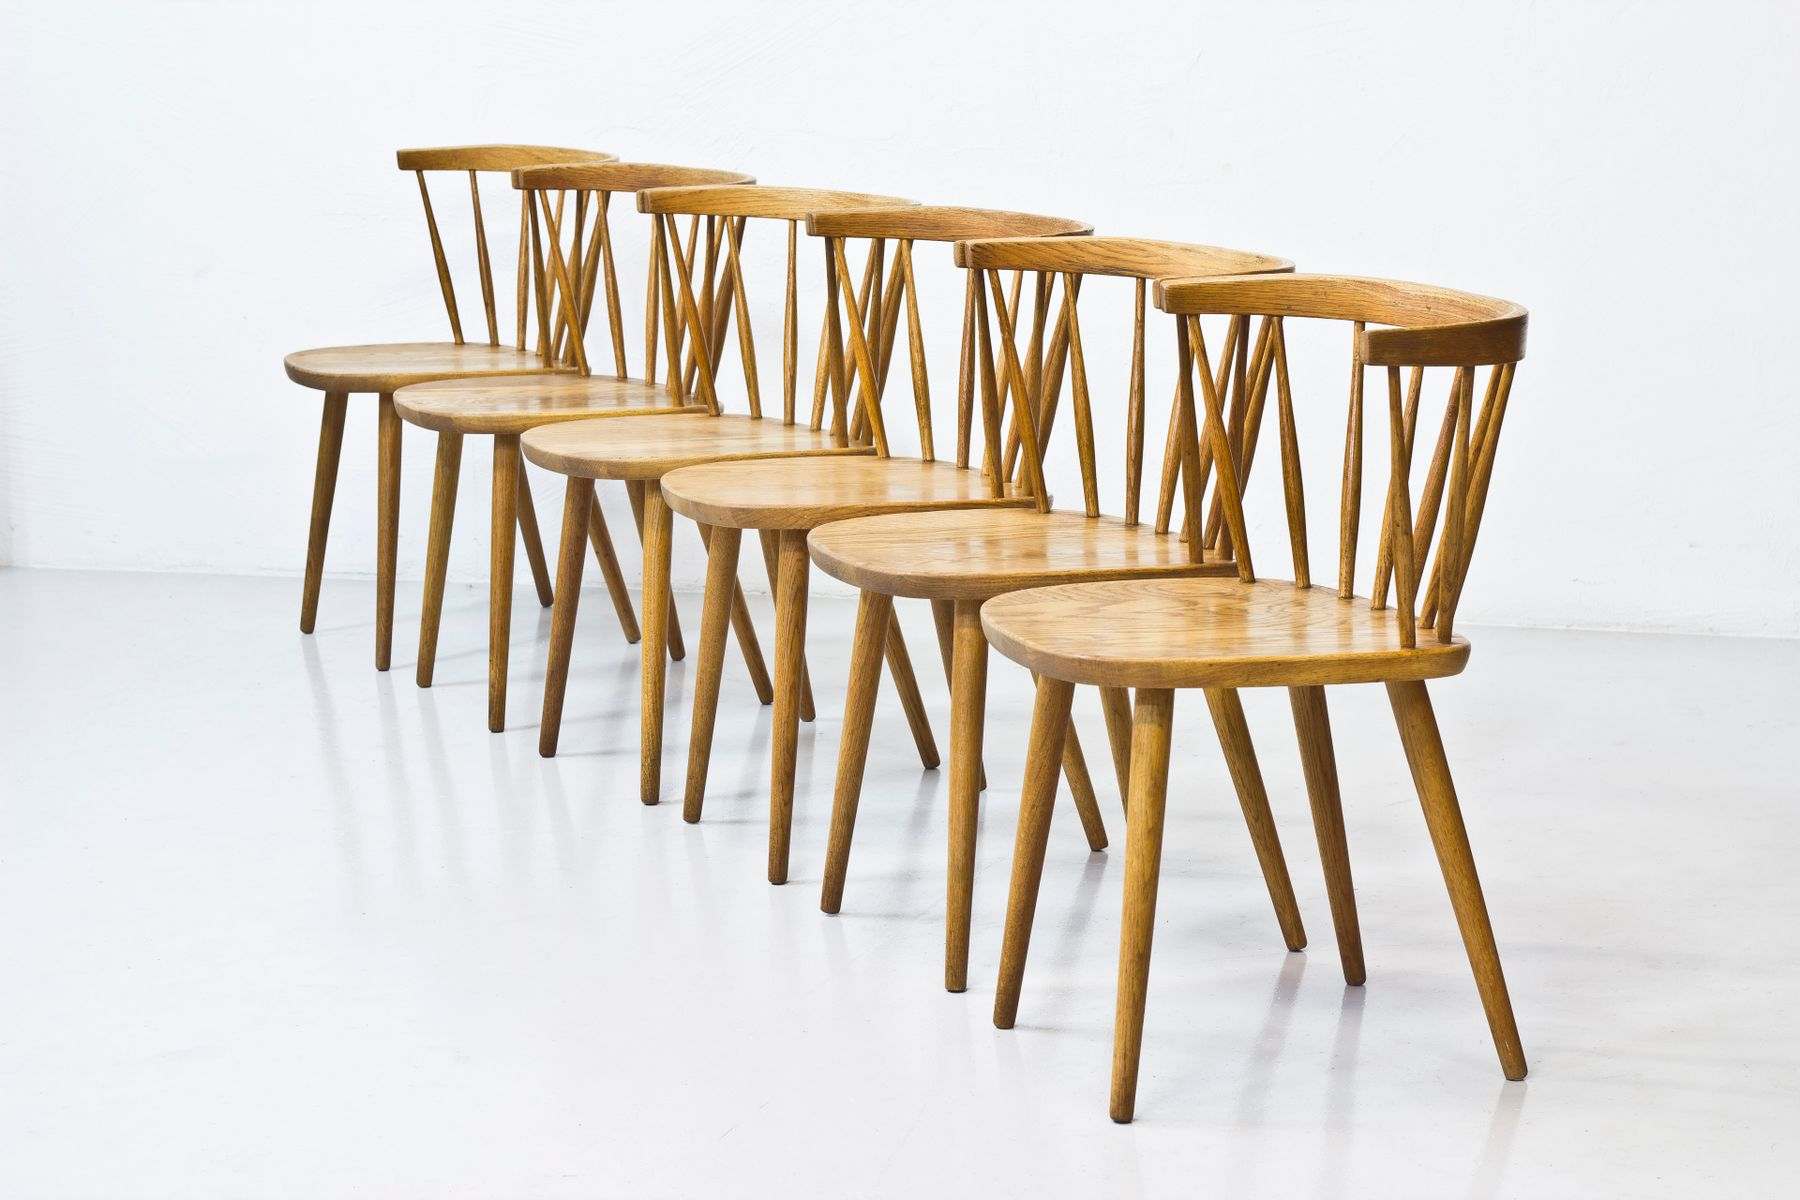 Bobino Chairs by Yngve Ekström for Stolab, 1950s, Set of 6 for sale at Pamono